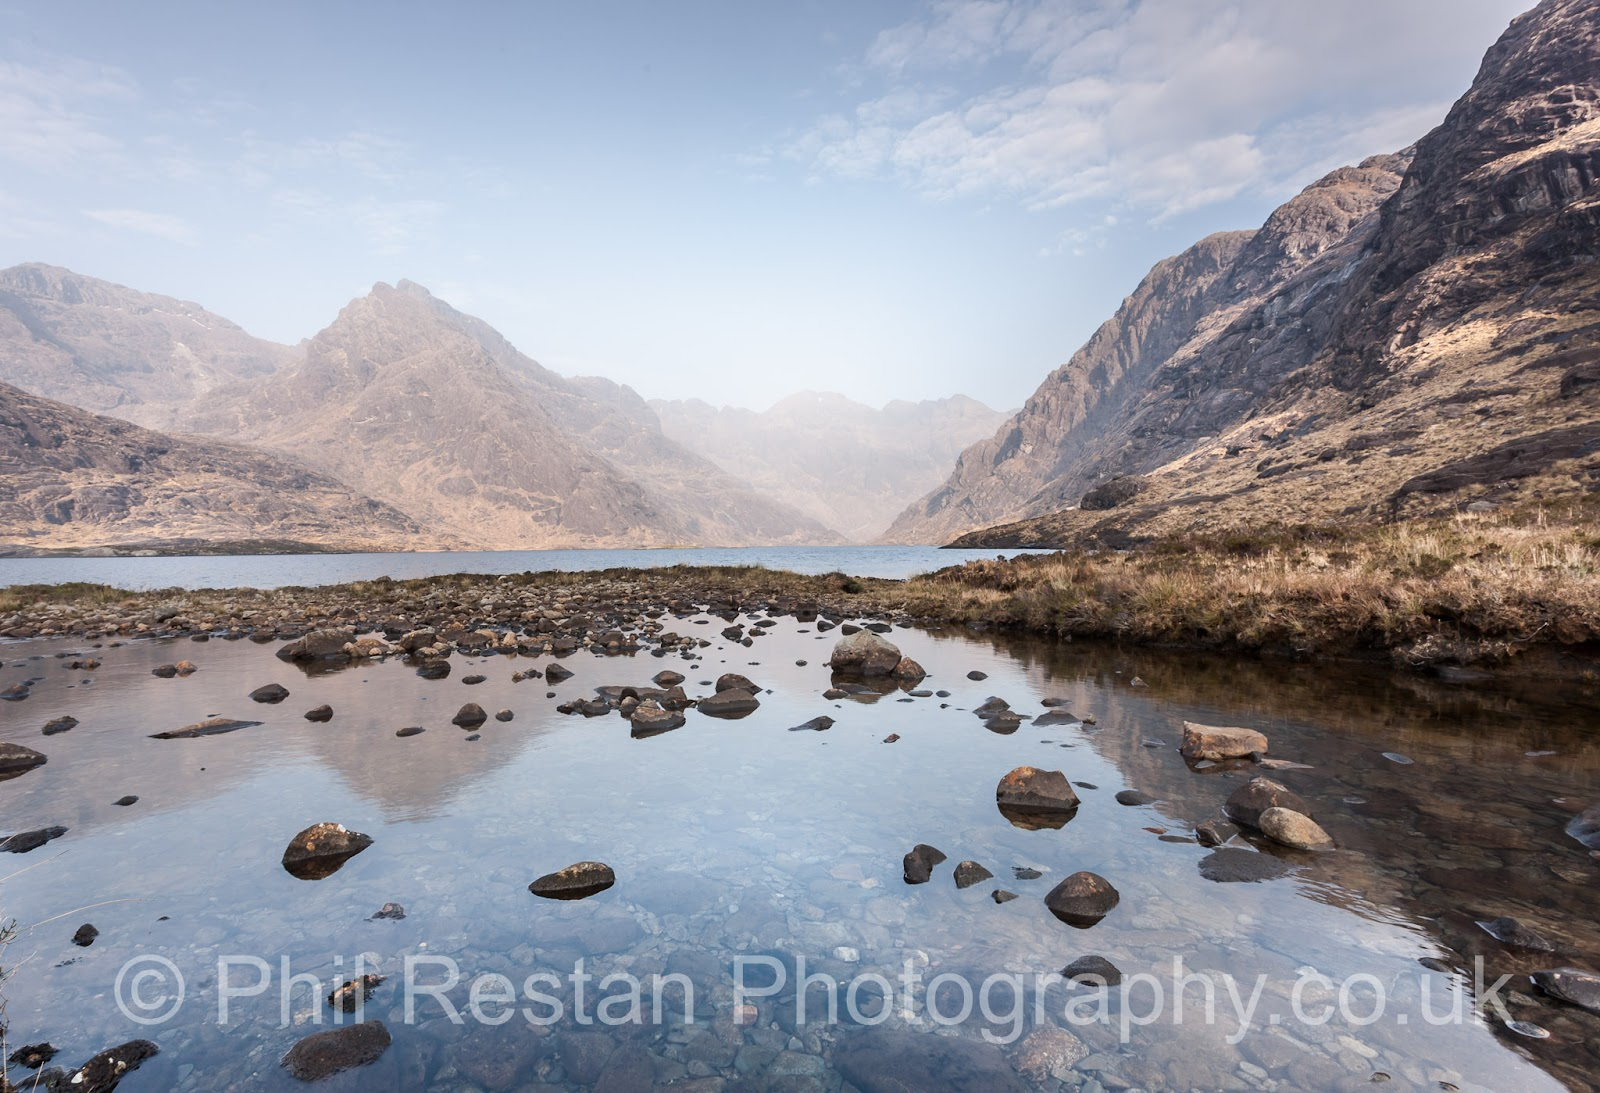 Photo of loch Coruisk, Isle of Skye